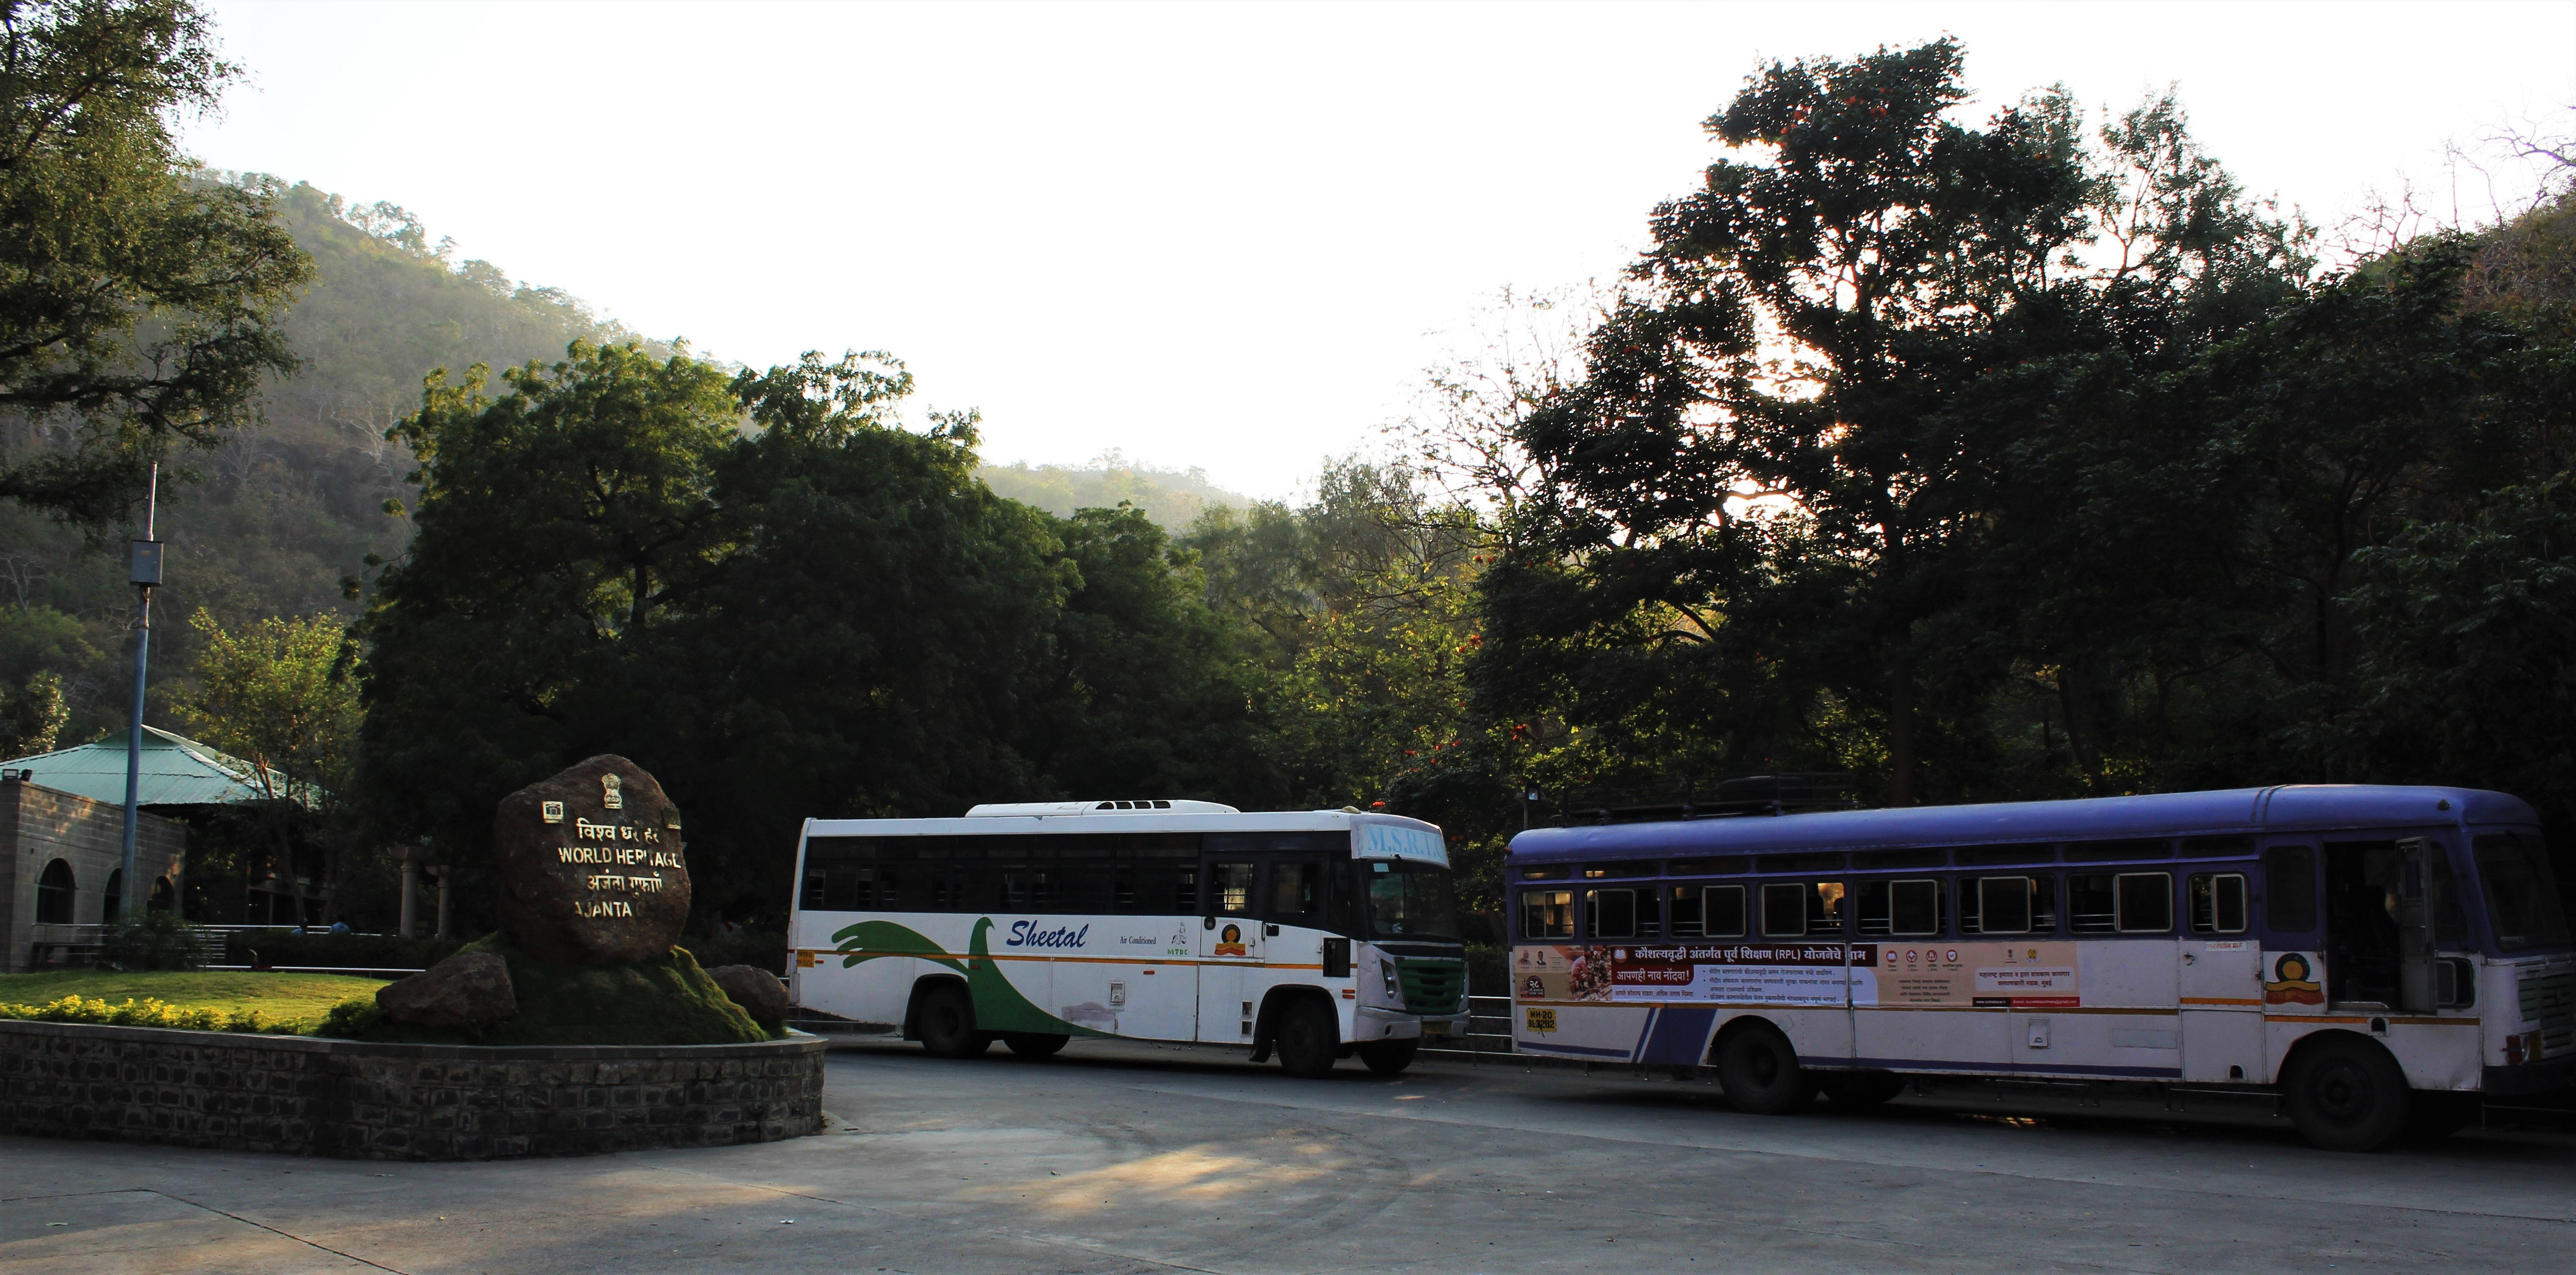 The Visitor Centre; buses are available to take the tourists to the Caves located higher up the ridge